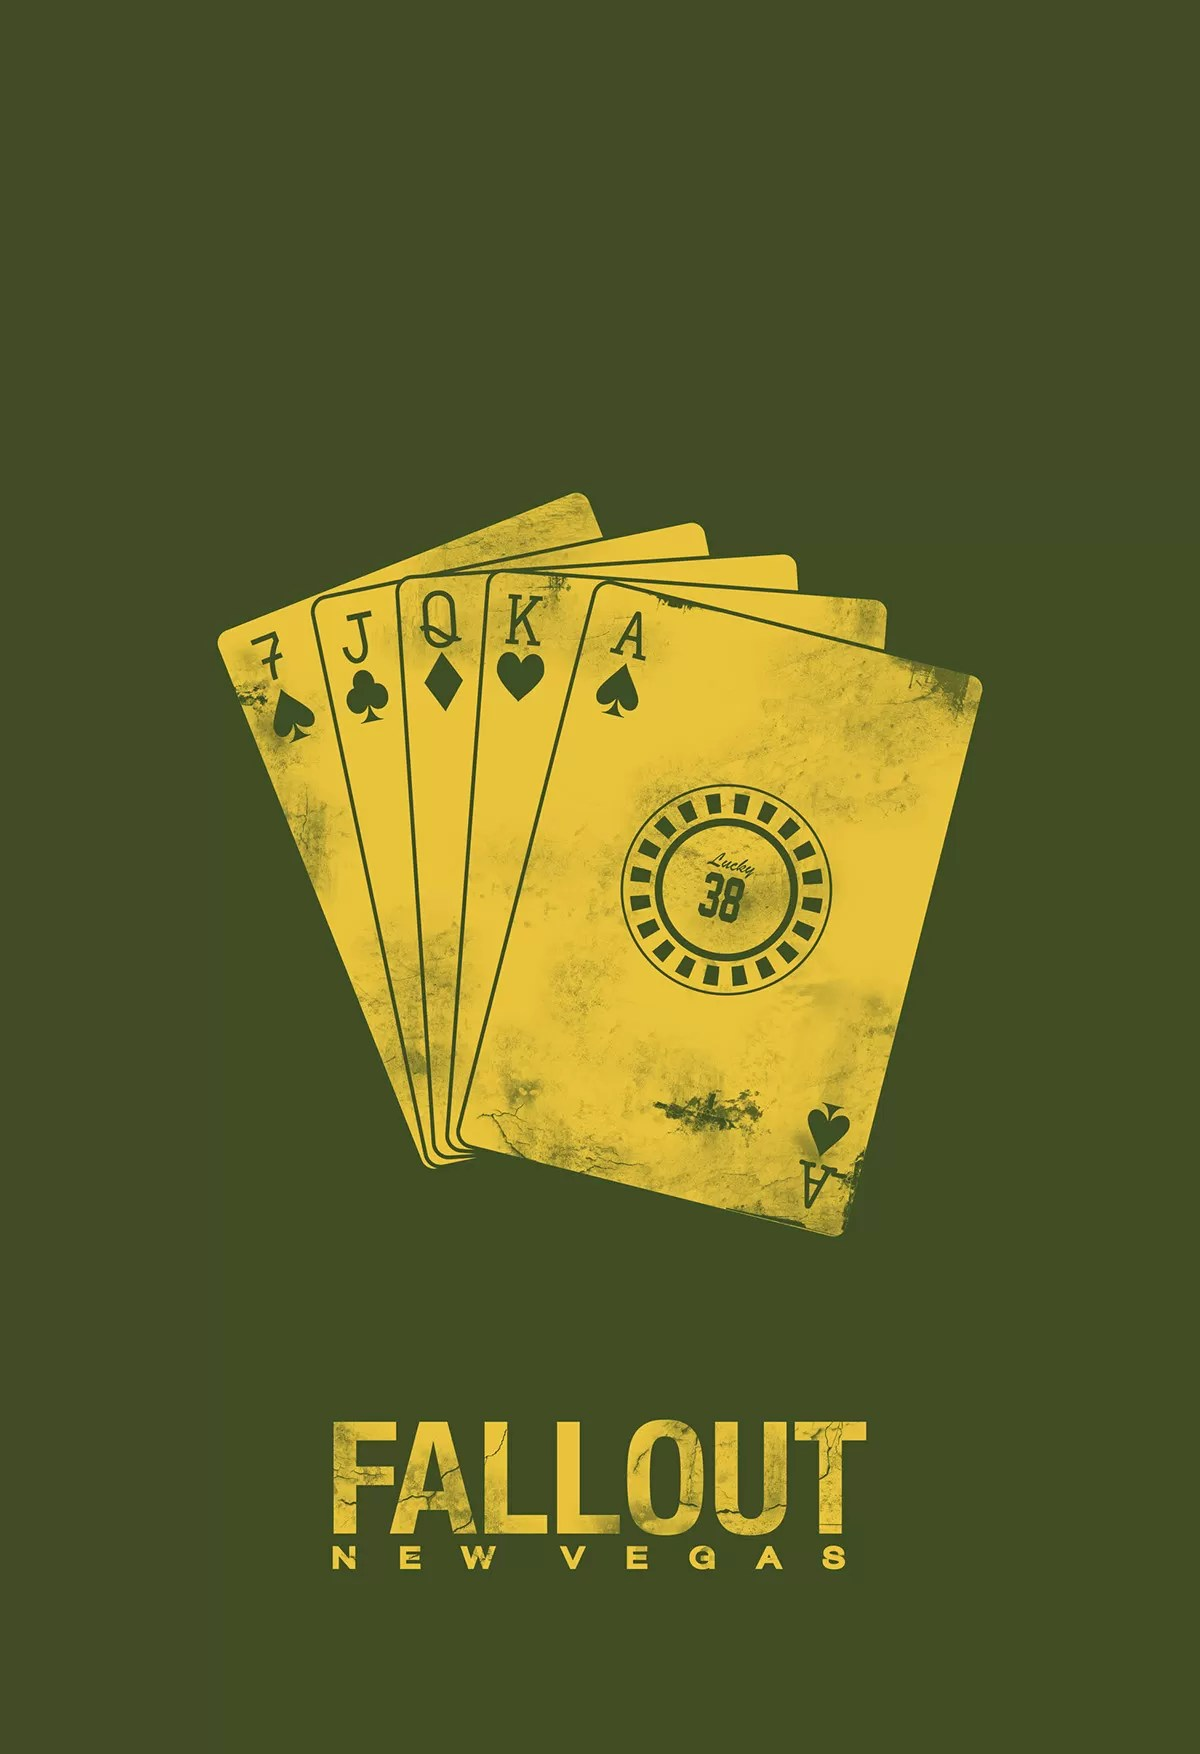 Fall Out Boy Logo Iphone Wallpaper 5 Days Of Awesome Wallpapers Tech Brands And Fanboyism